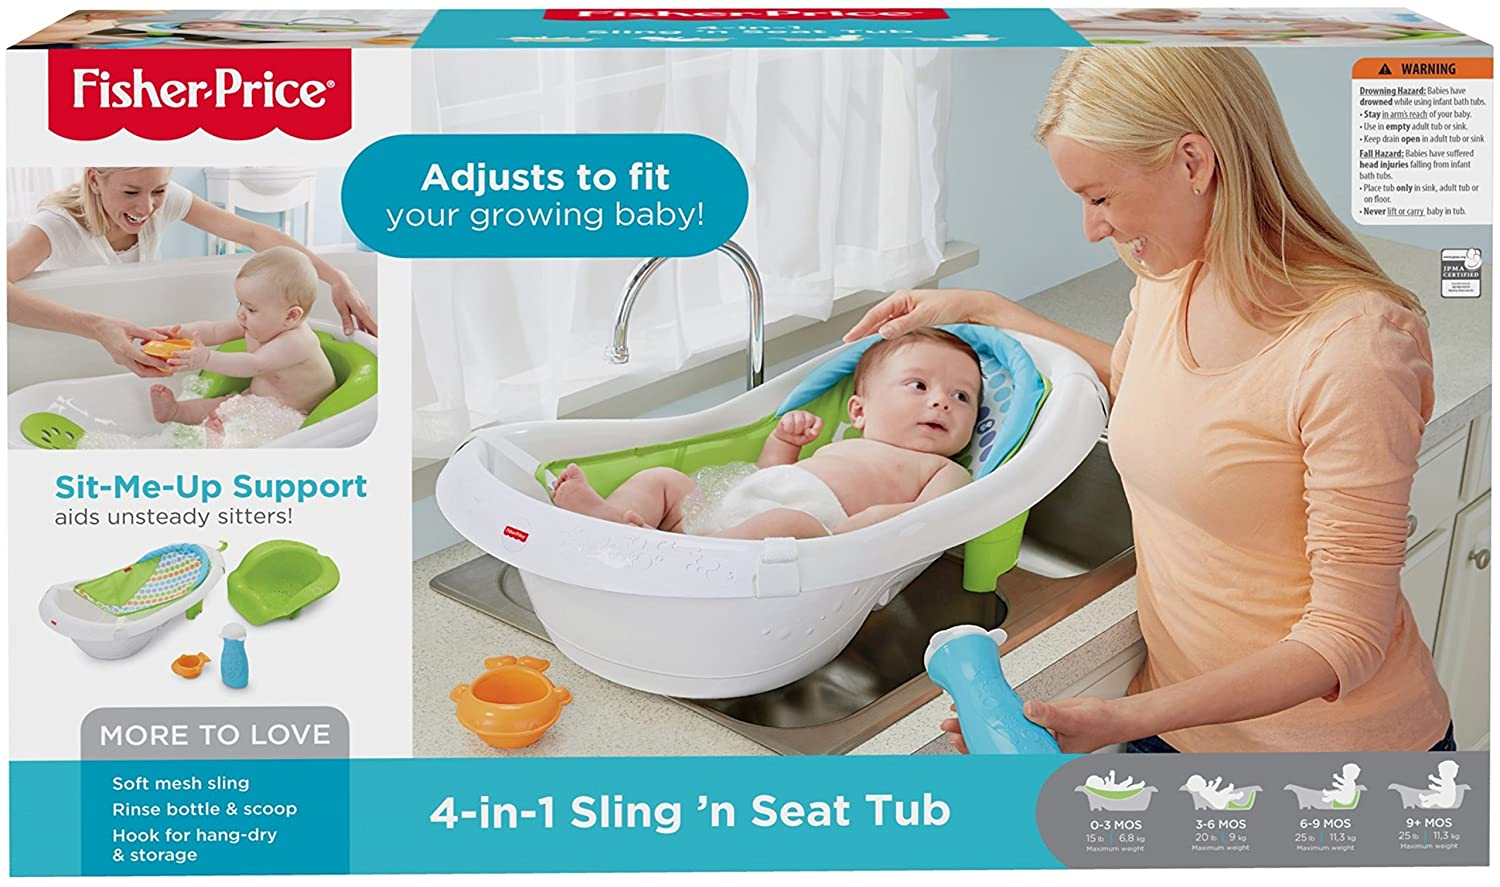 Amazon.com: Fisher-Price 4-in-1 Sling n Seat Tub: Kitchen & Dining